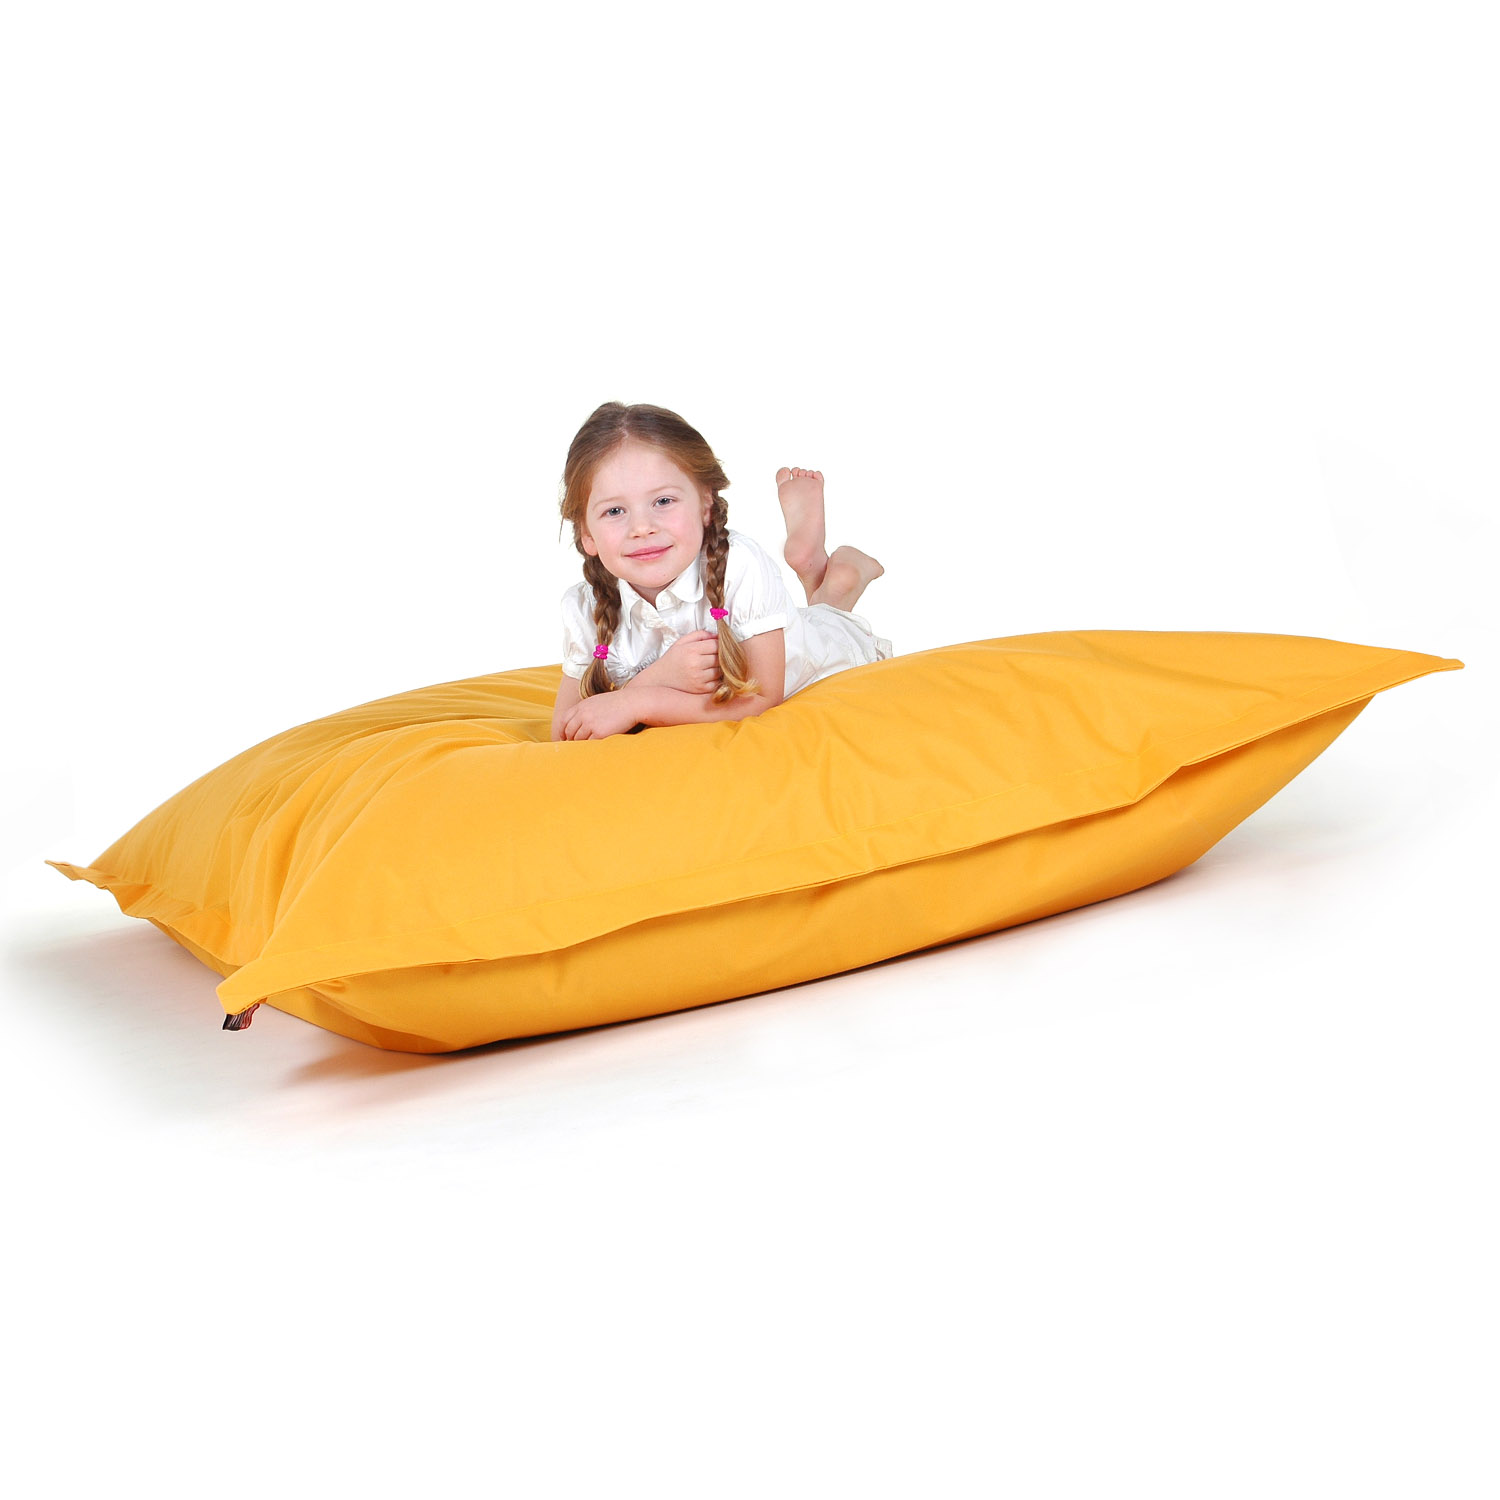 Bean bag Kids Giant adults Bean bag chair Yellow